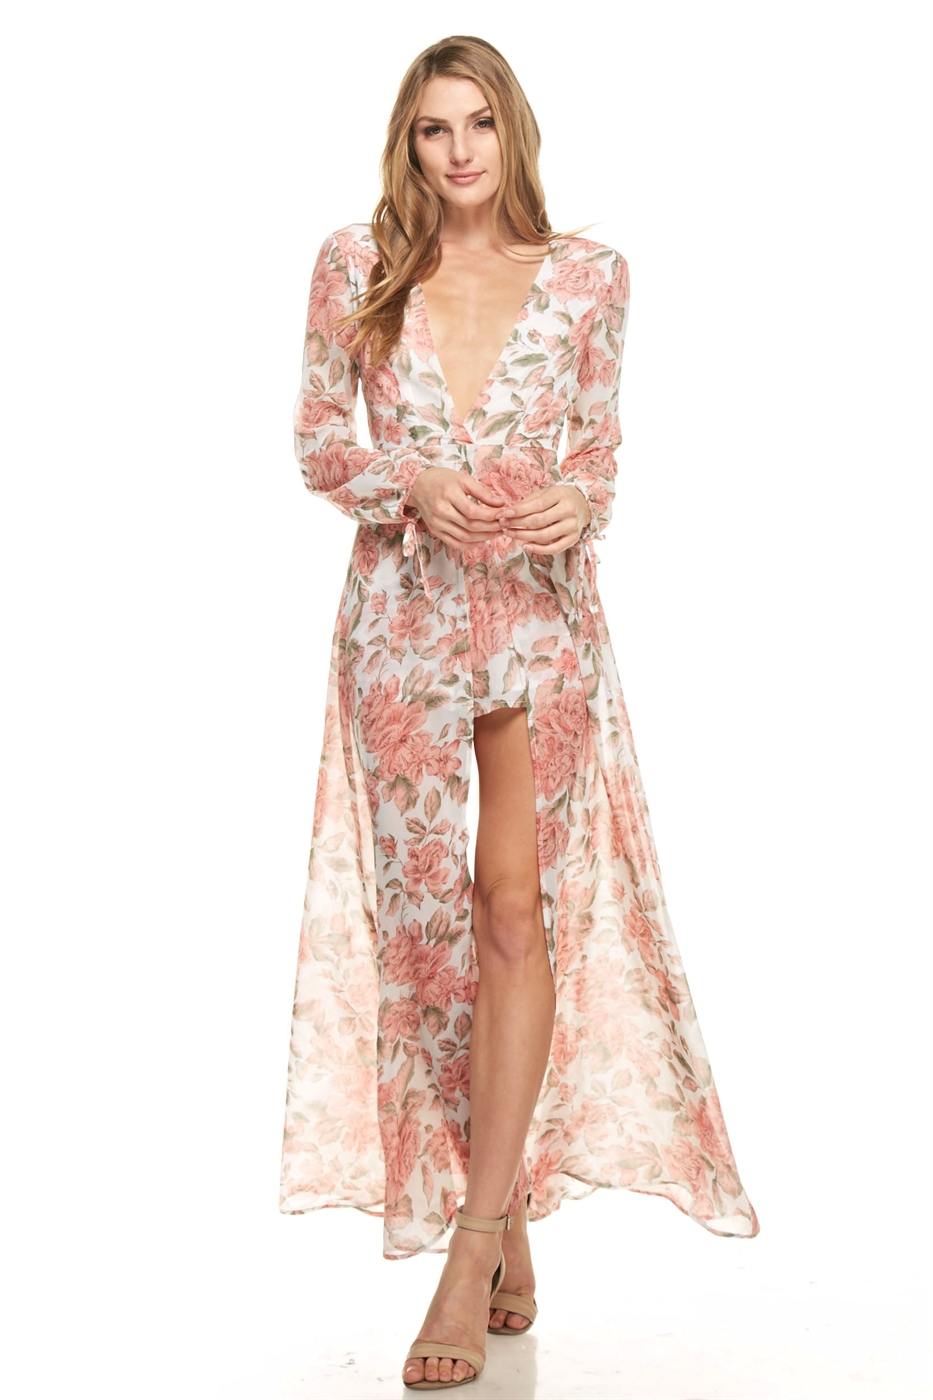 THE CLOTHING COMPANY Wholesale Floral Print Romper With